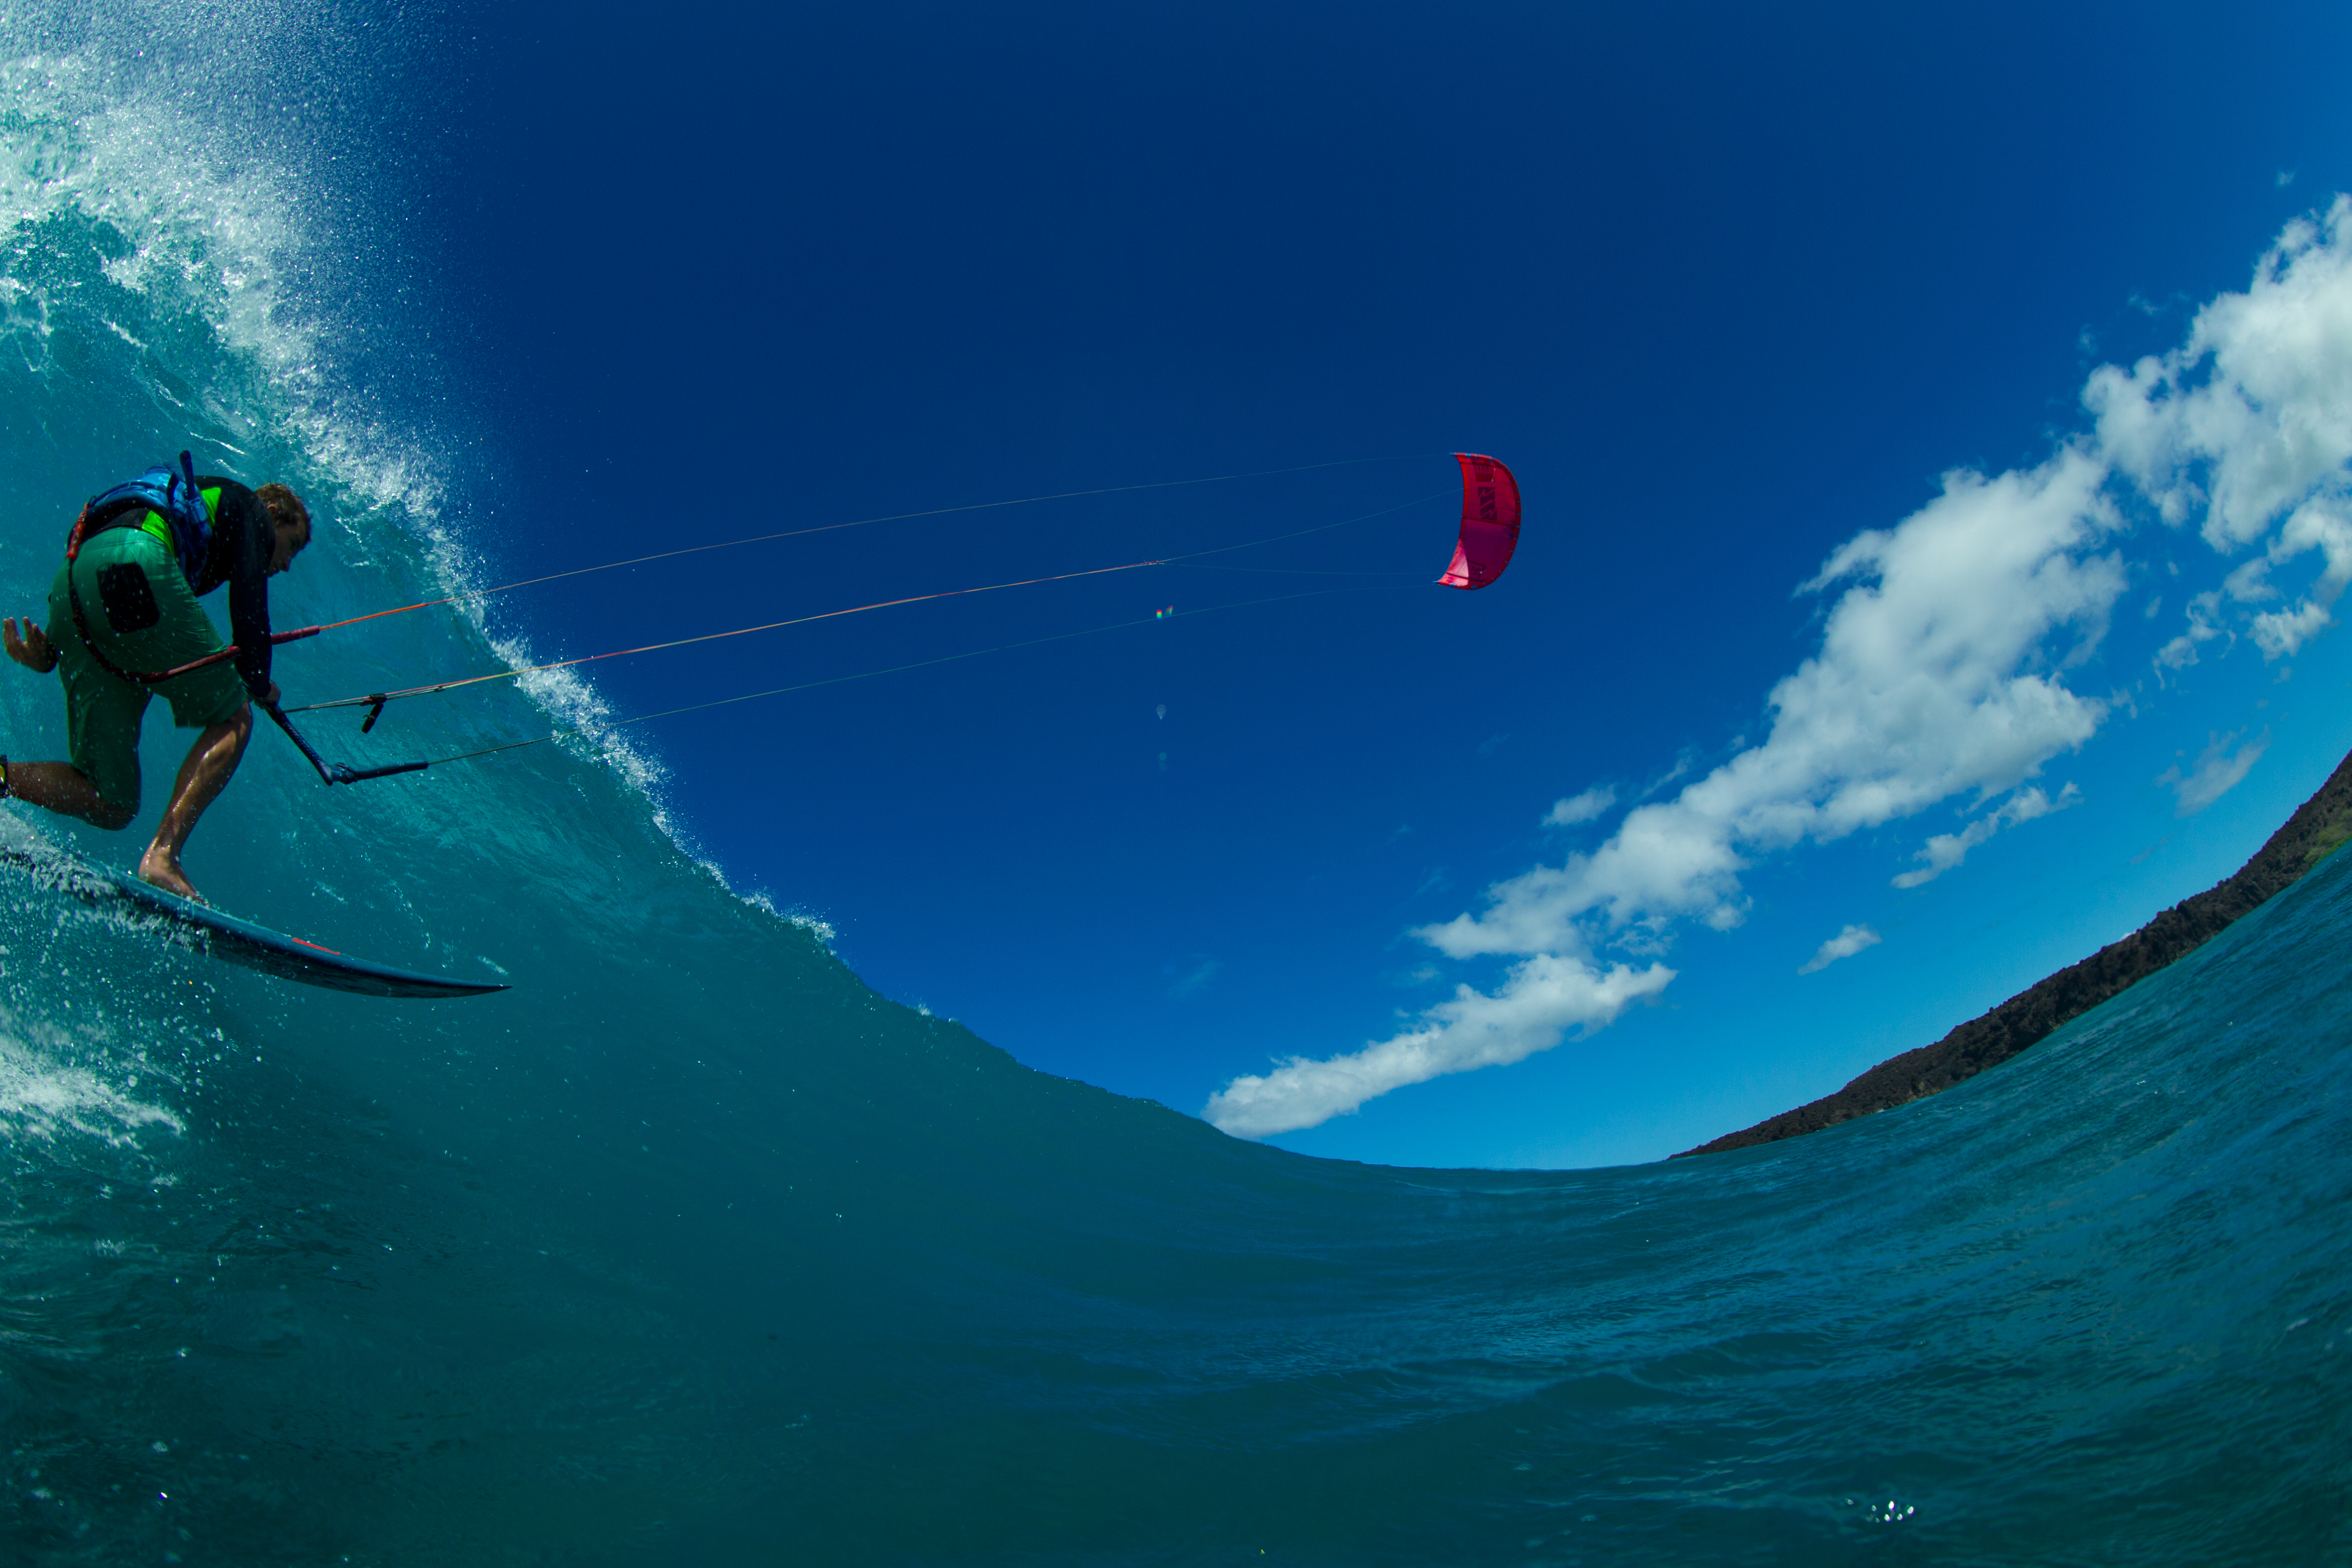 kitesurf wallpaper image - A kiteboarder - Patri Mclaughlin - with the North Kiteboarding 2016 Neo kite riding a wave. - in resolution: Original 4896 X 3264